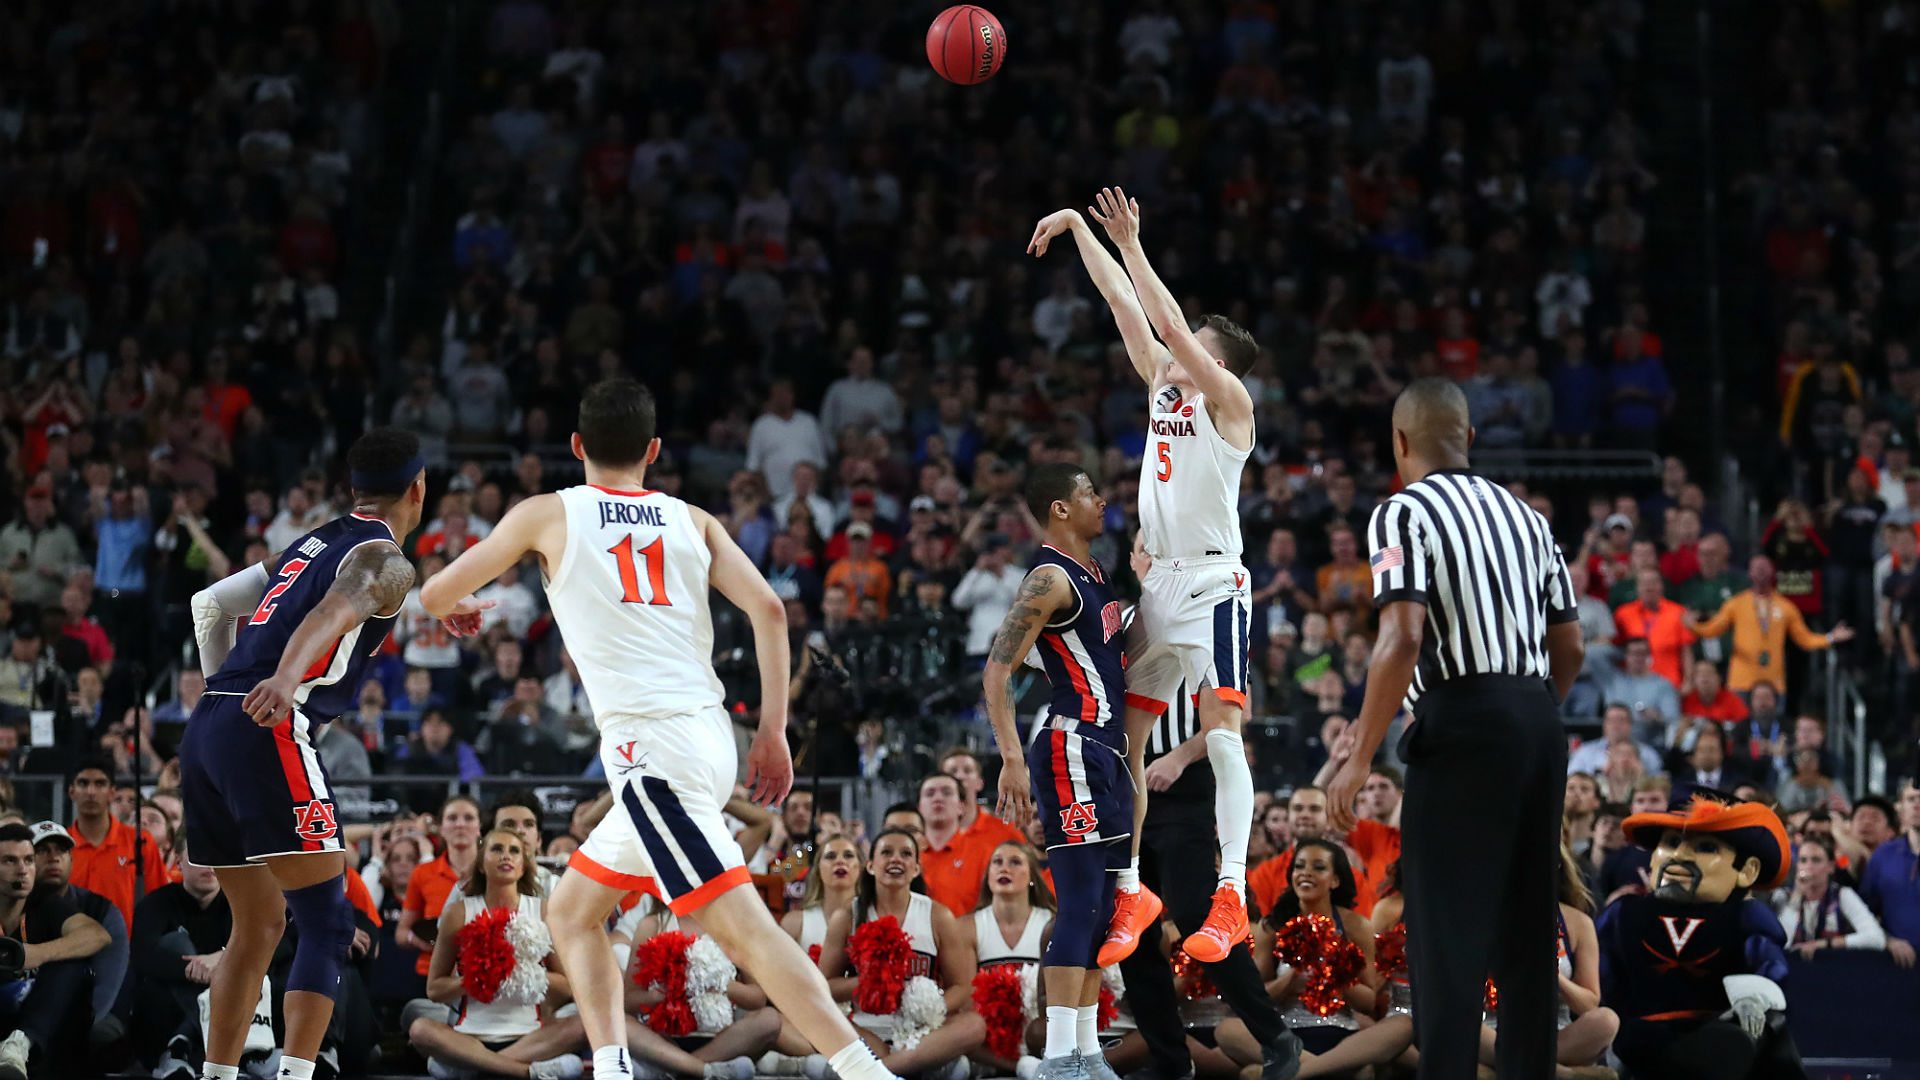 March Madness 2019 3 Takeaways From Duke S Win Over: 3 Takeaways From Virginia's Last-second Win Over Auburn